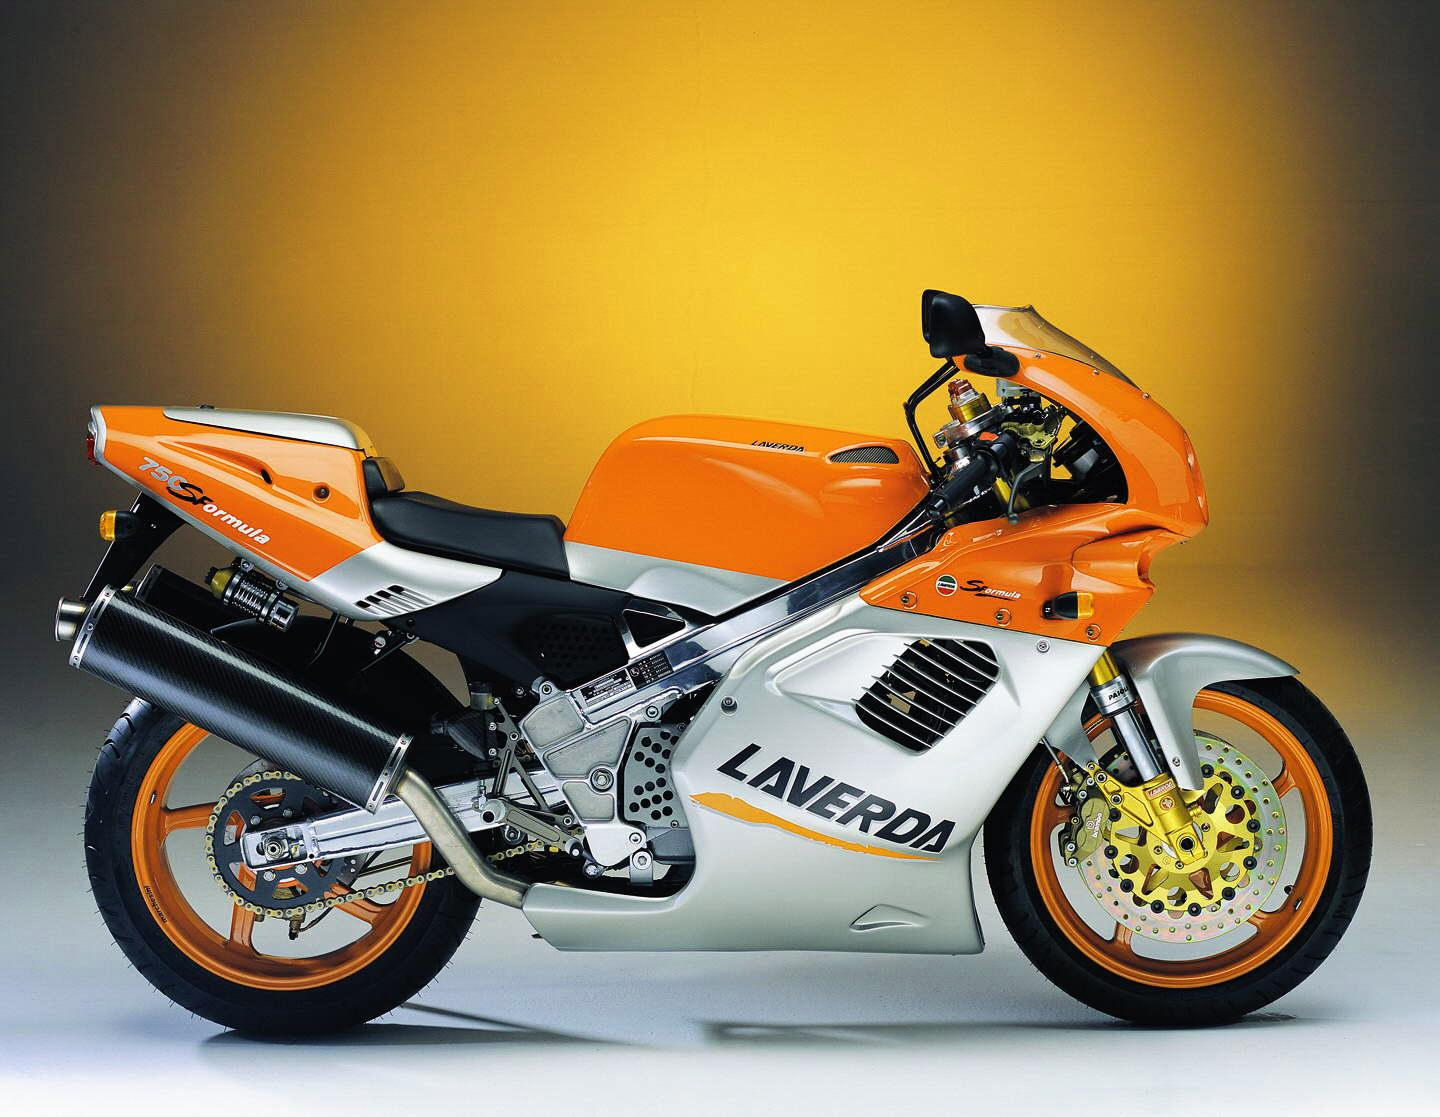 Laverda 650 Ghost Strike images #101798